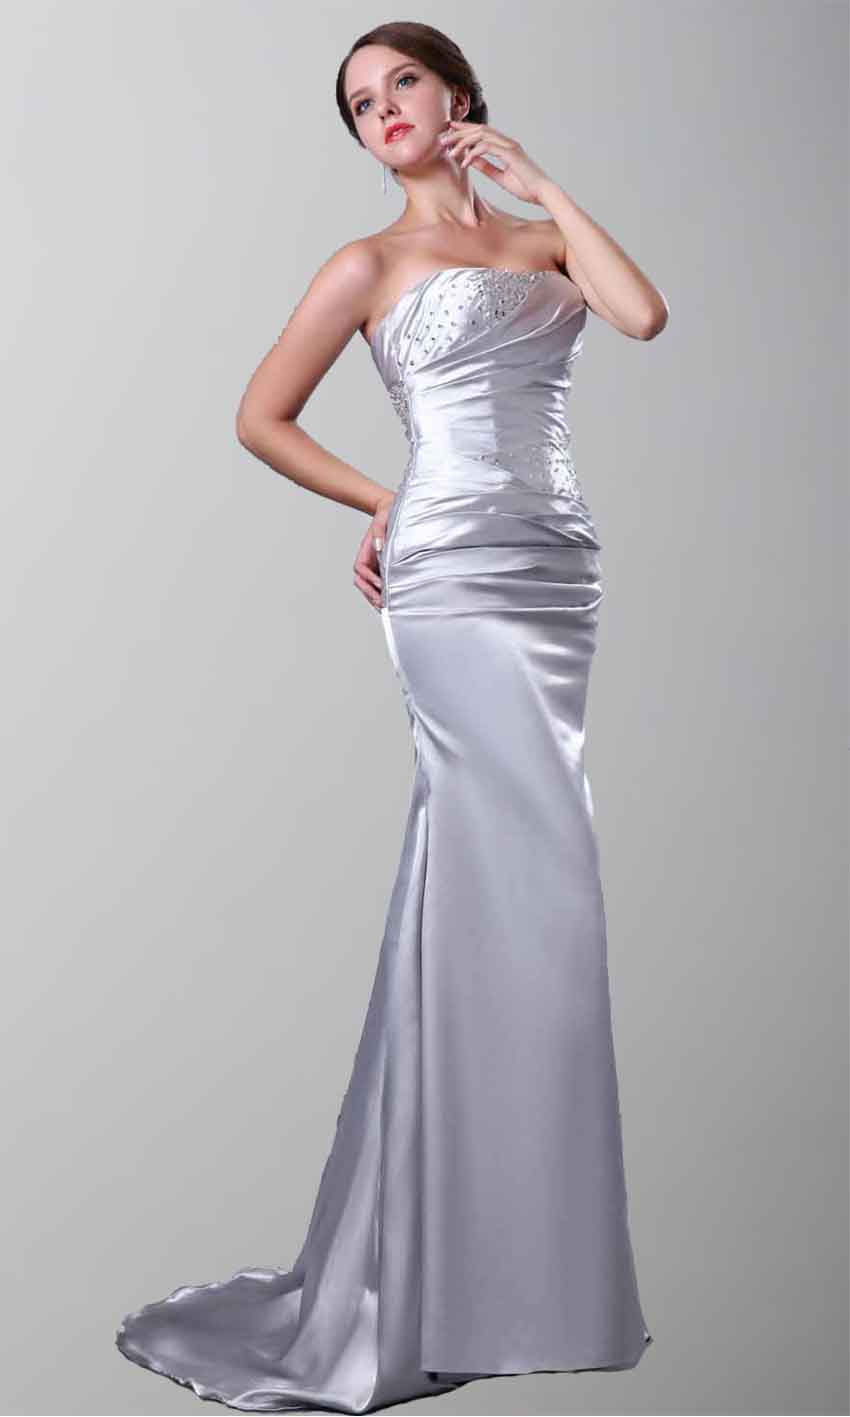 Satin Cocktail Dresses Uk